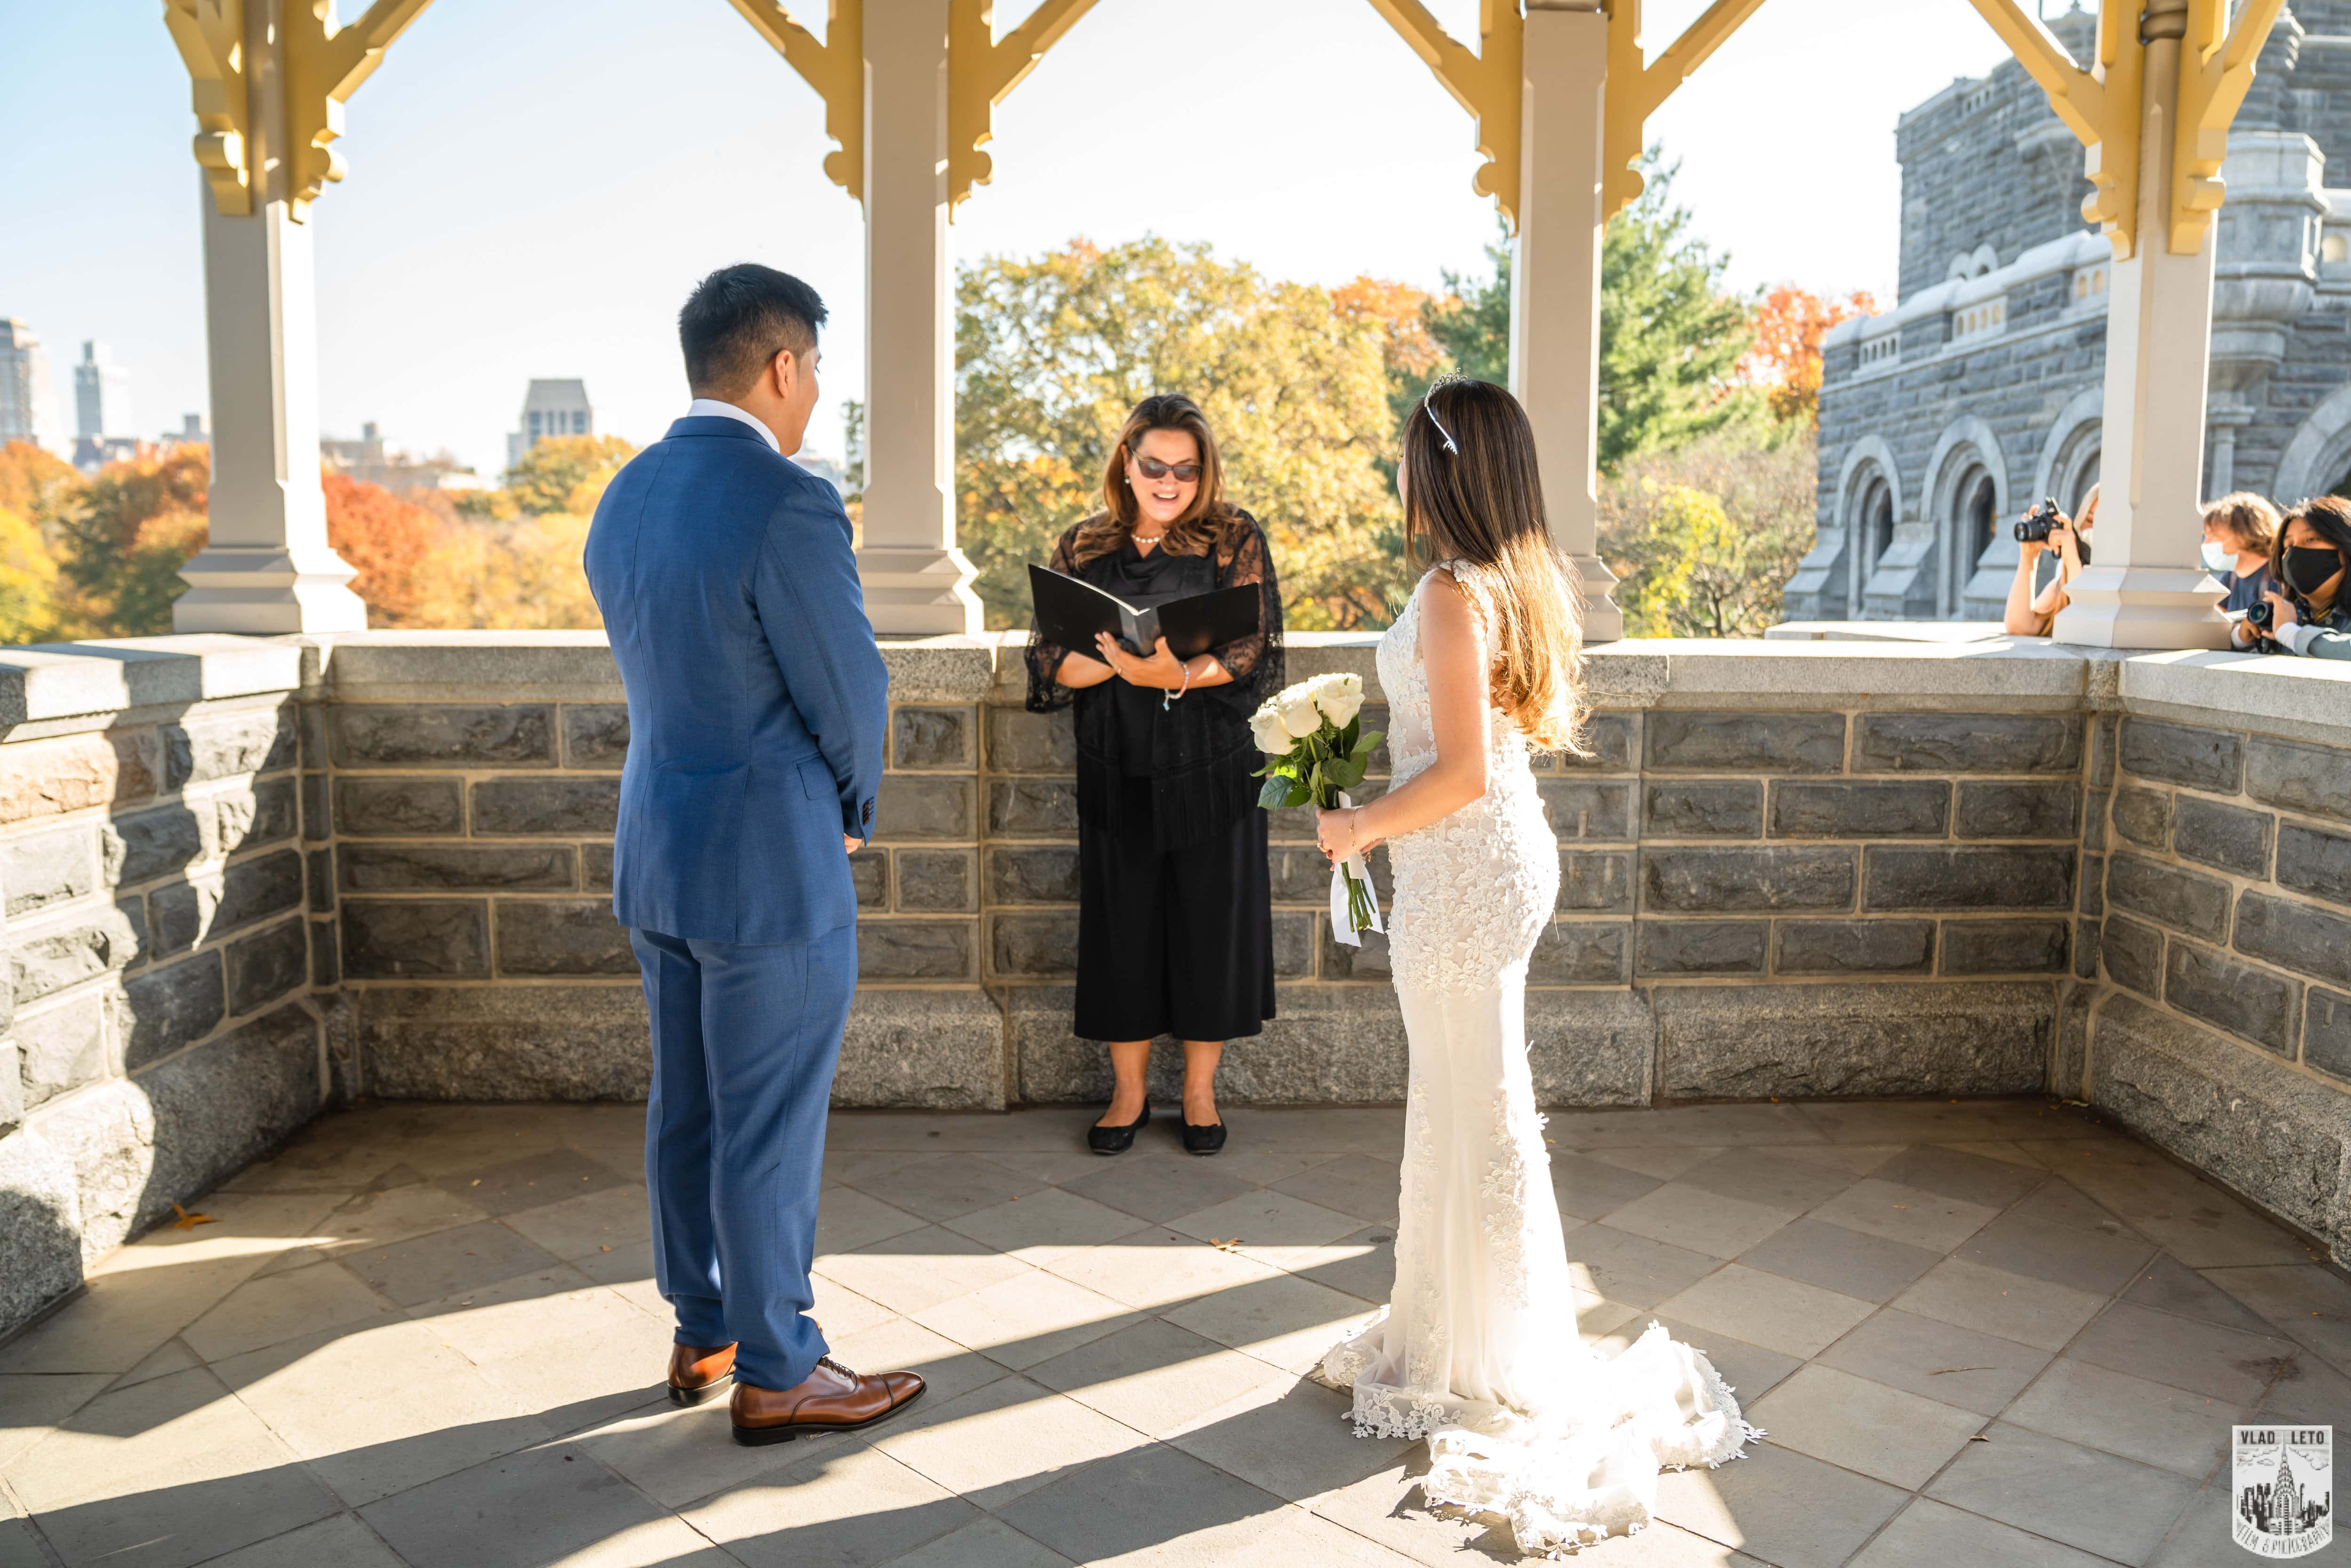 Photo 5 Francisco and Maria wedding ceremony at the Belvedere Castle